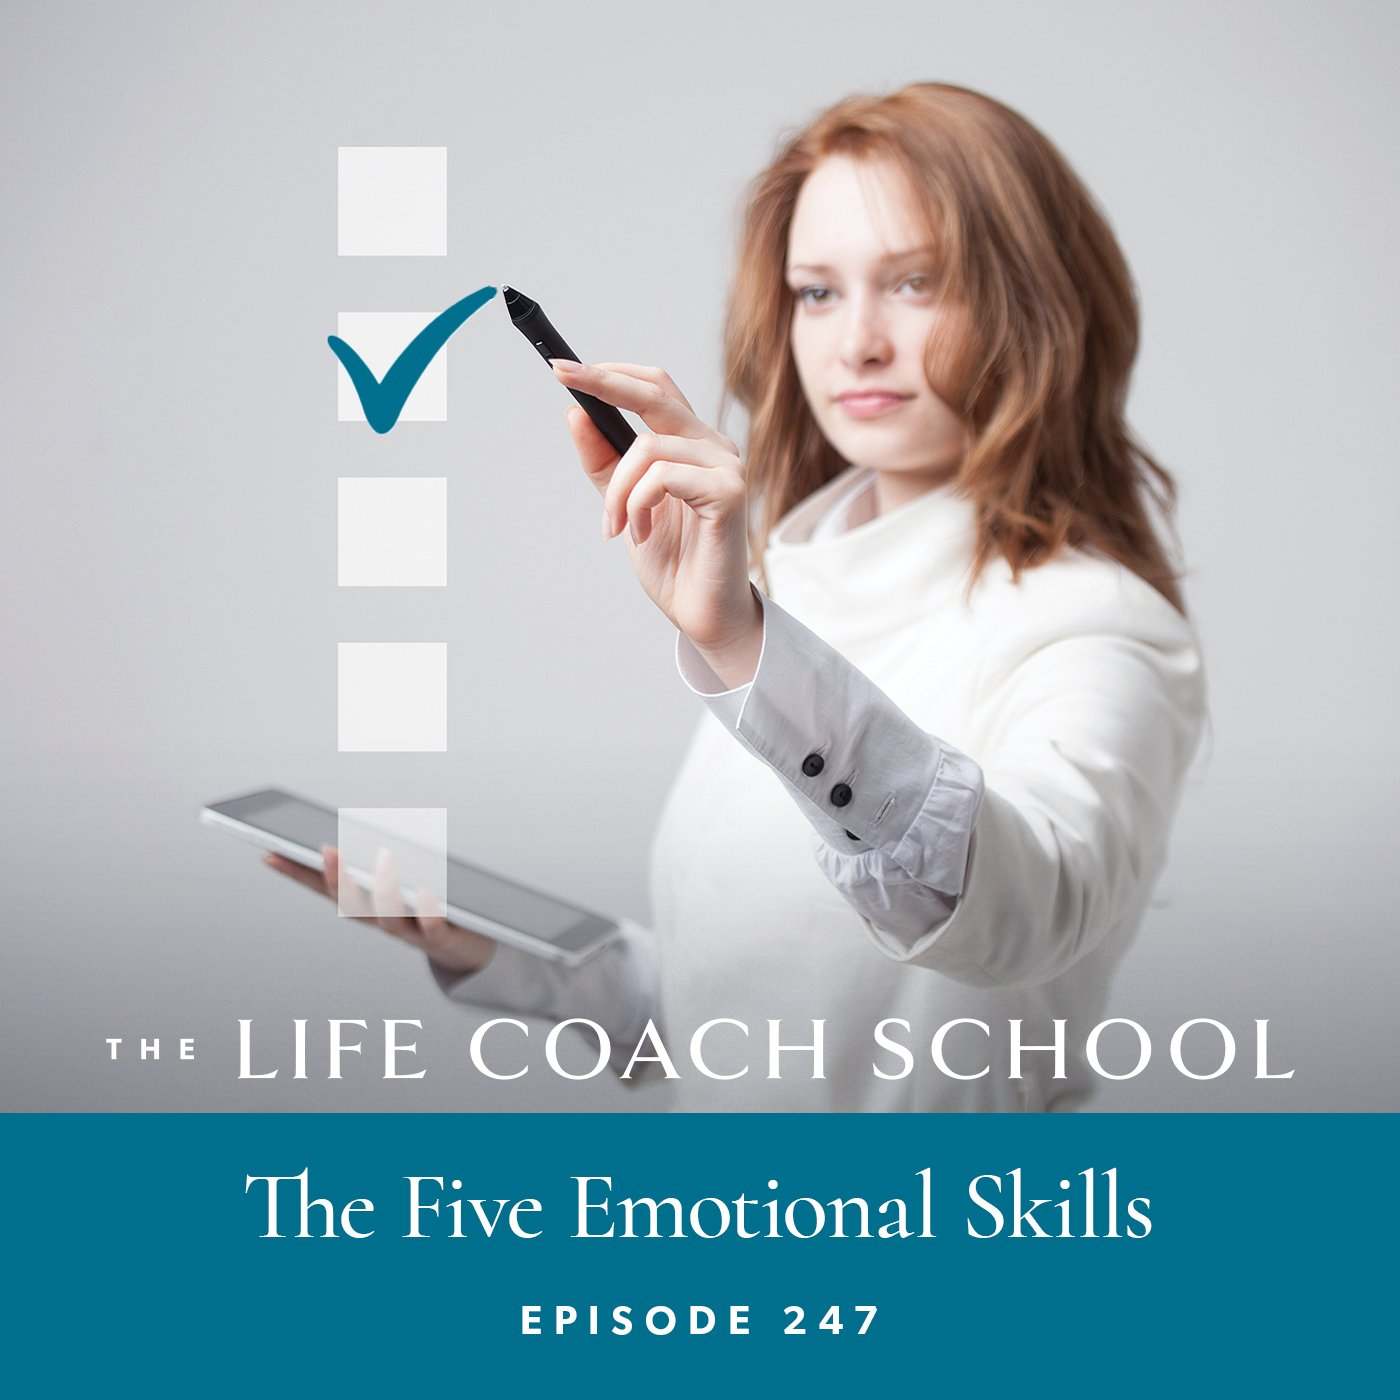 The Life Coach School Podcast with Brooke Castillo | Episode 247 | The Five Emotional Skills